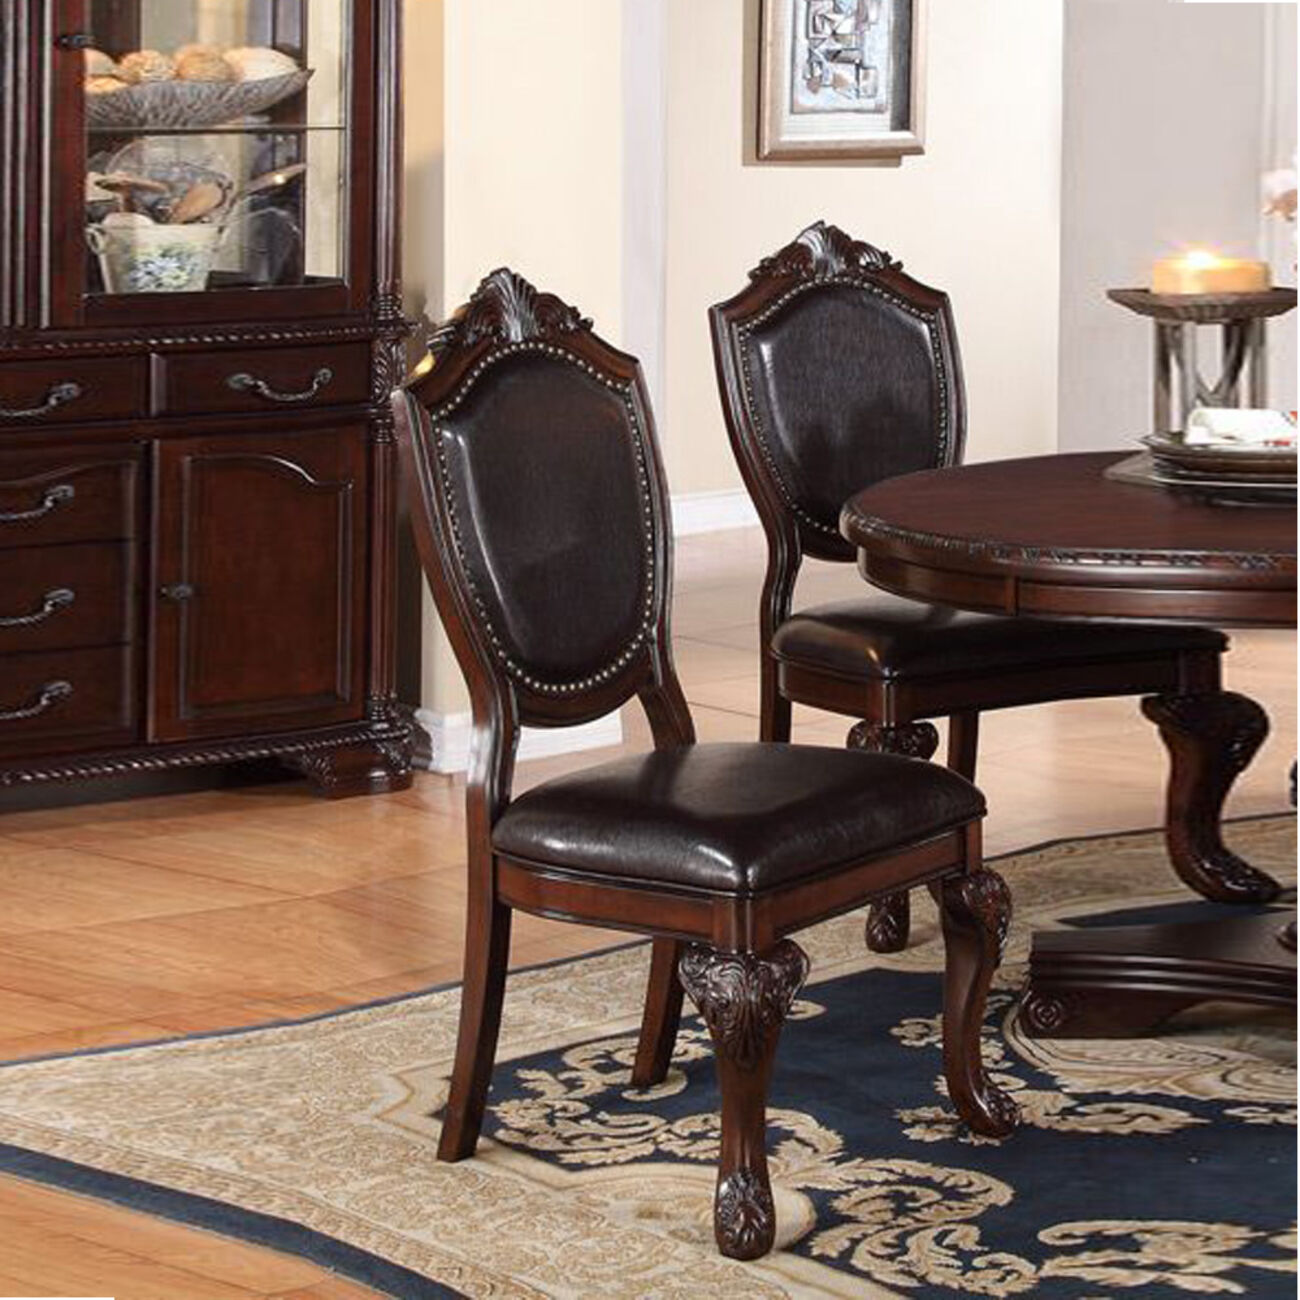 Rubber Wood Dining Chair With Faux Leather Upholstery , Set Of 2,Brown